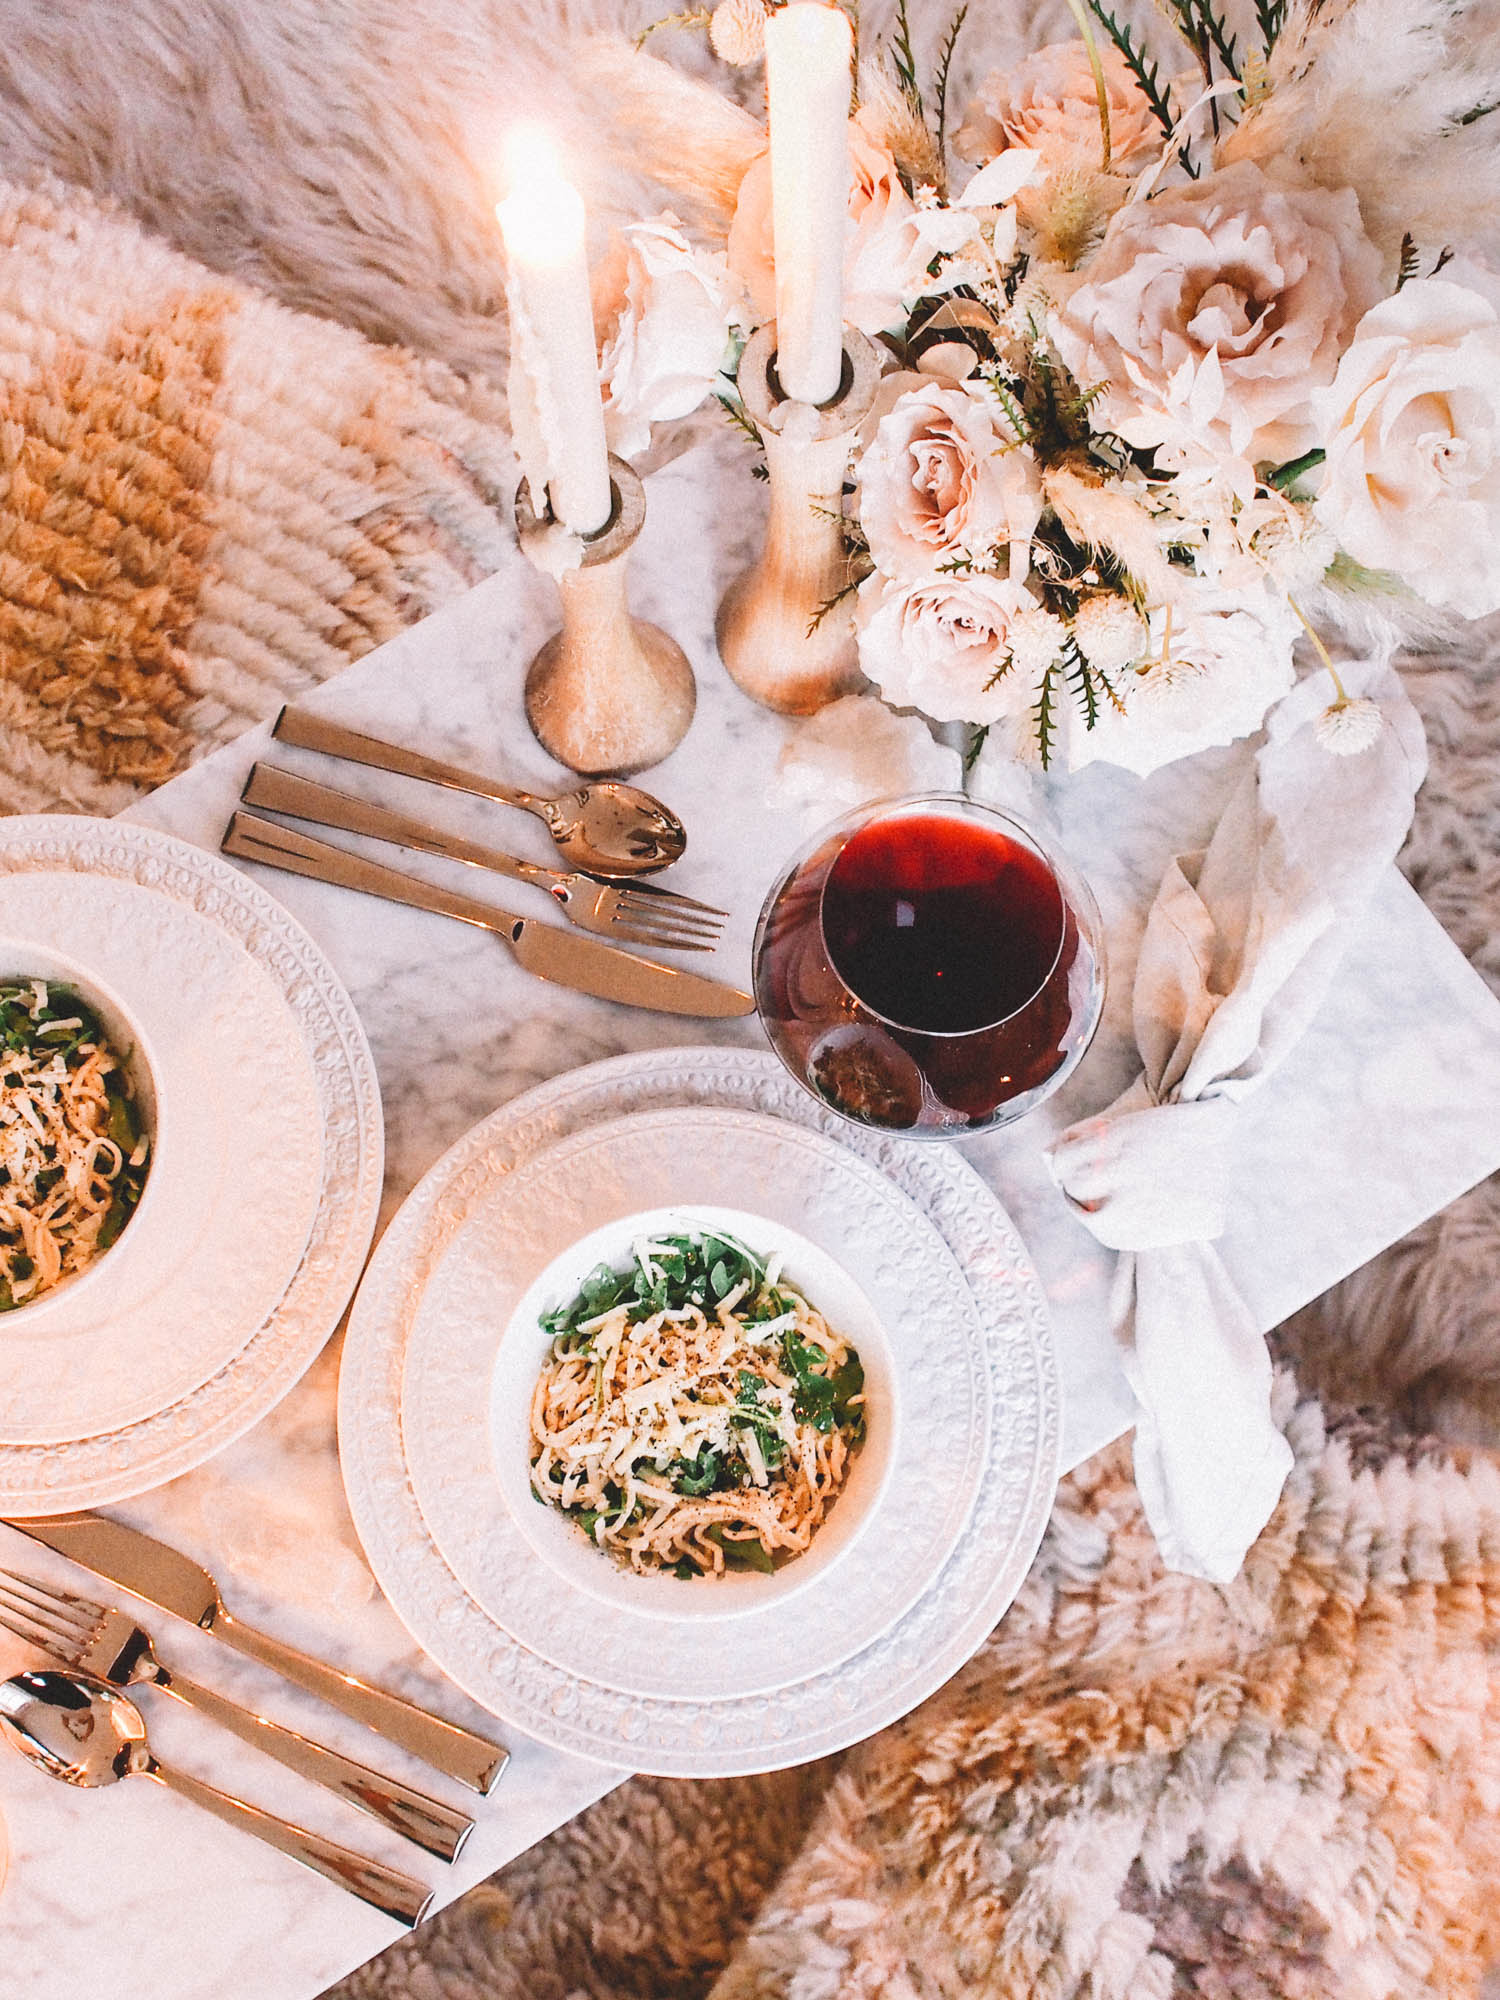 Easy pasta date night recipe | A Fabulous Fete